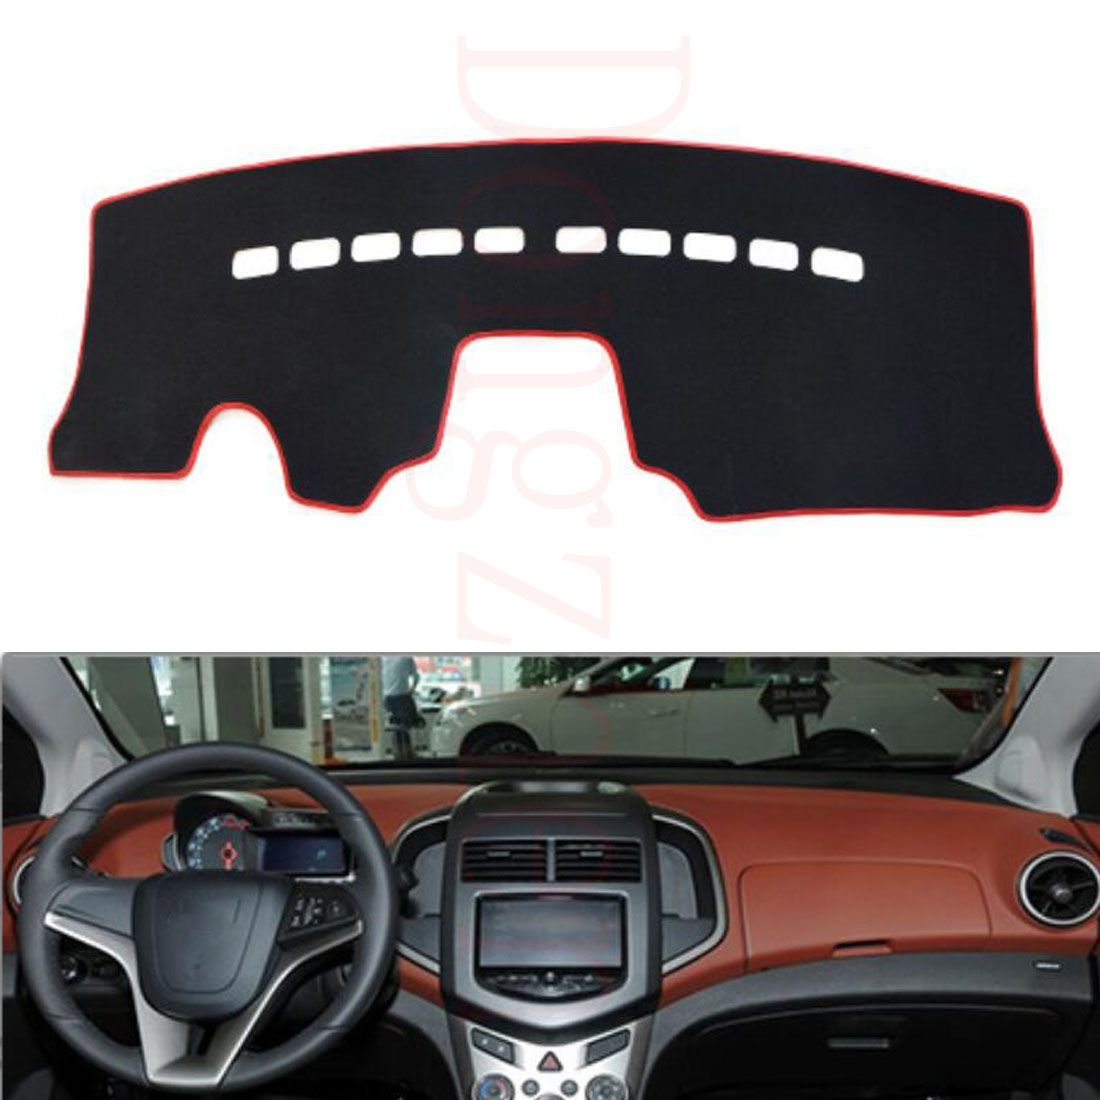 Dongzhen Fit For Chevrolet Aveo 2011-2013 Car Dashboard Cover Avoid Light Pad Instrument Platform Dash Board Cover